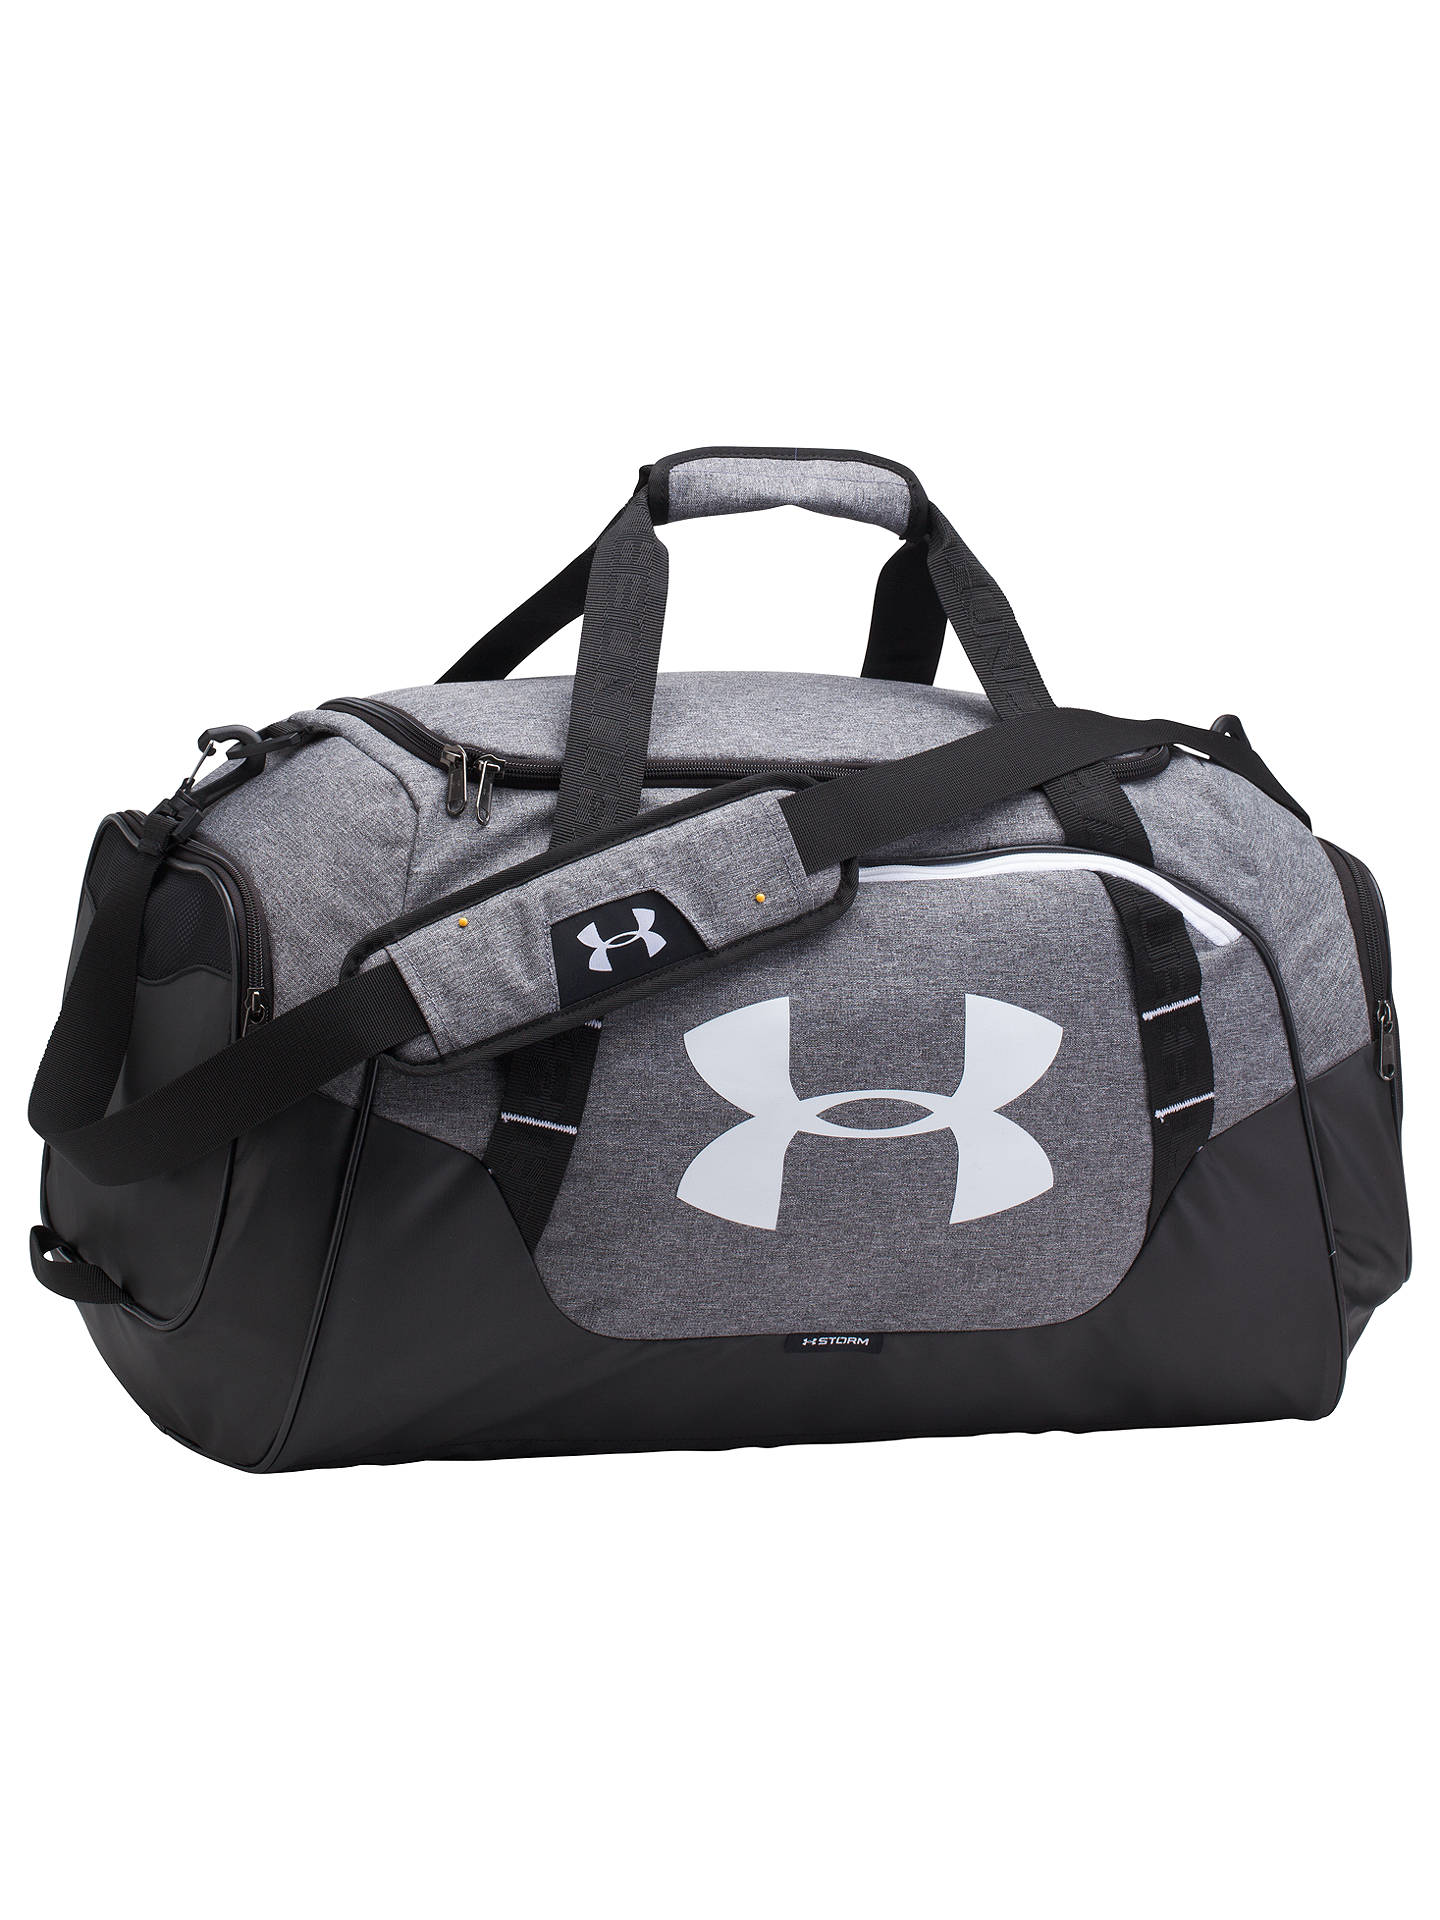 8d4e73941684 Buy Under Armour Storm Undeniable 3.0 Duffle Bag